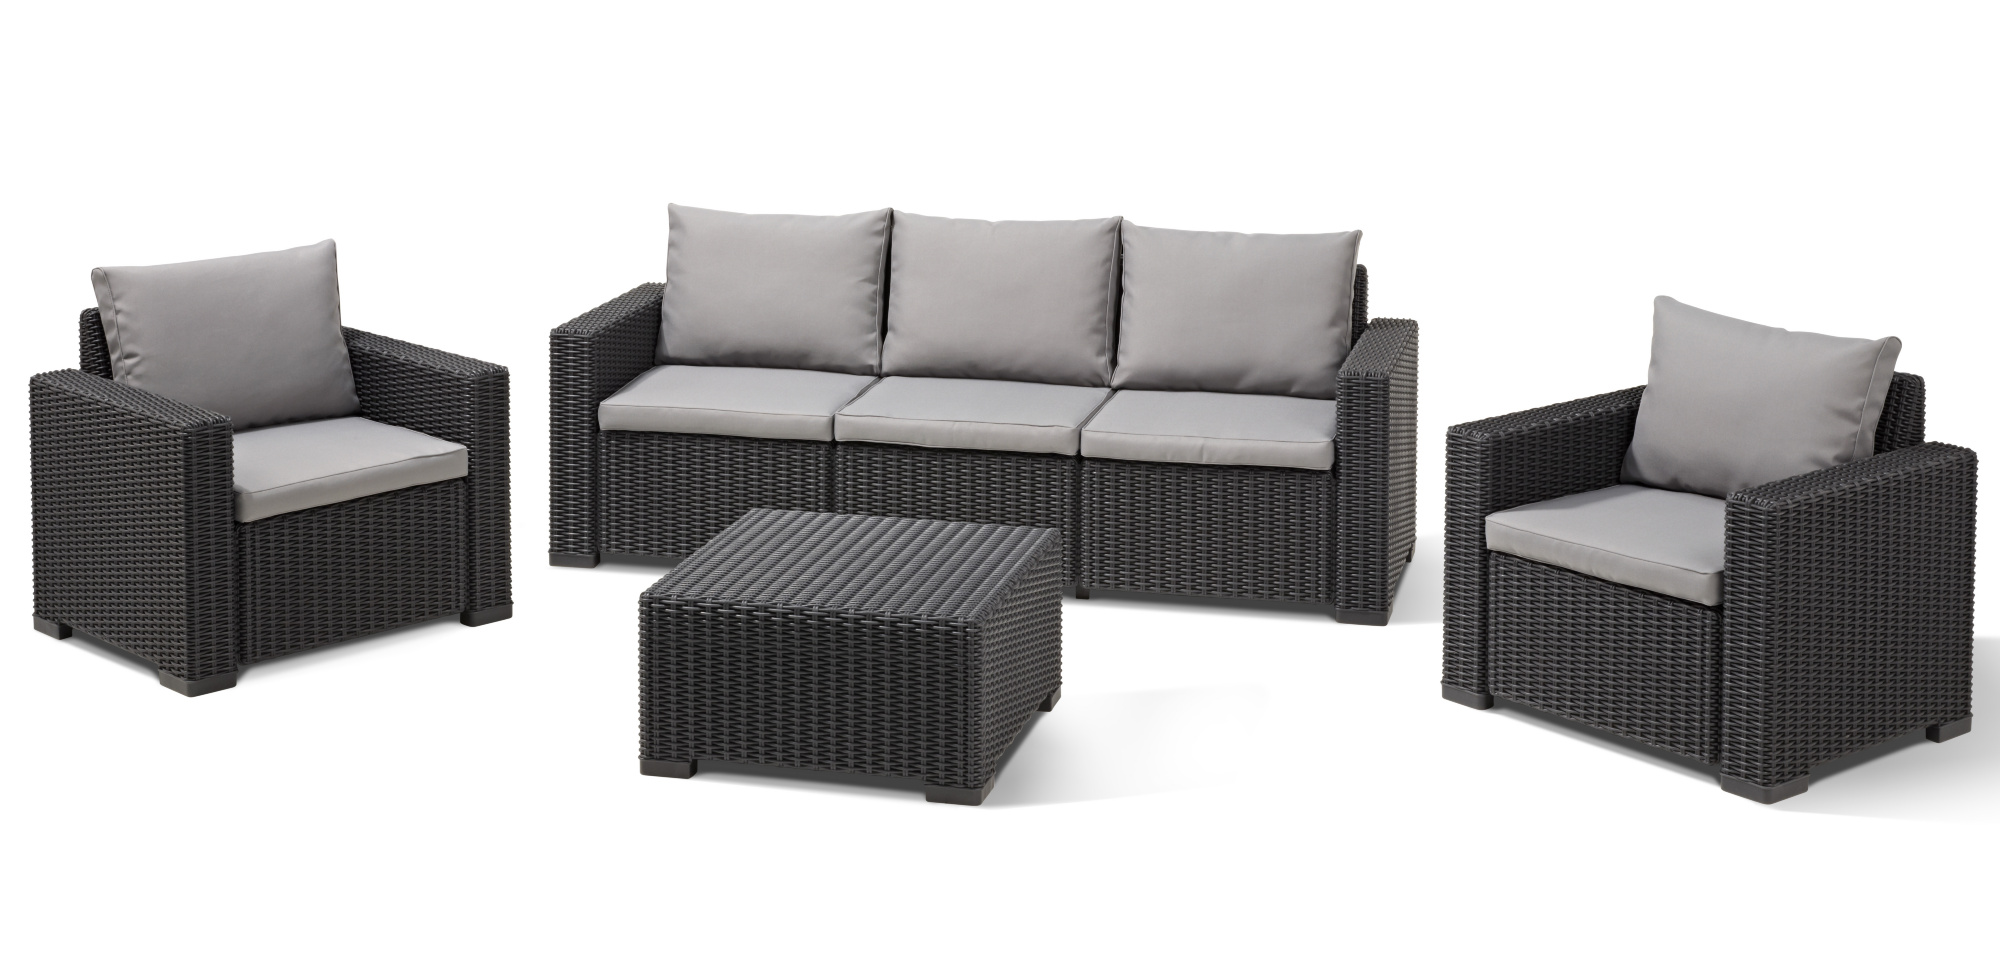 Allibert california lounge set graphite three seater for Table et fauteuil jardin